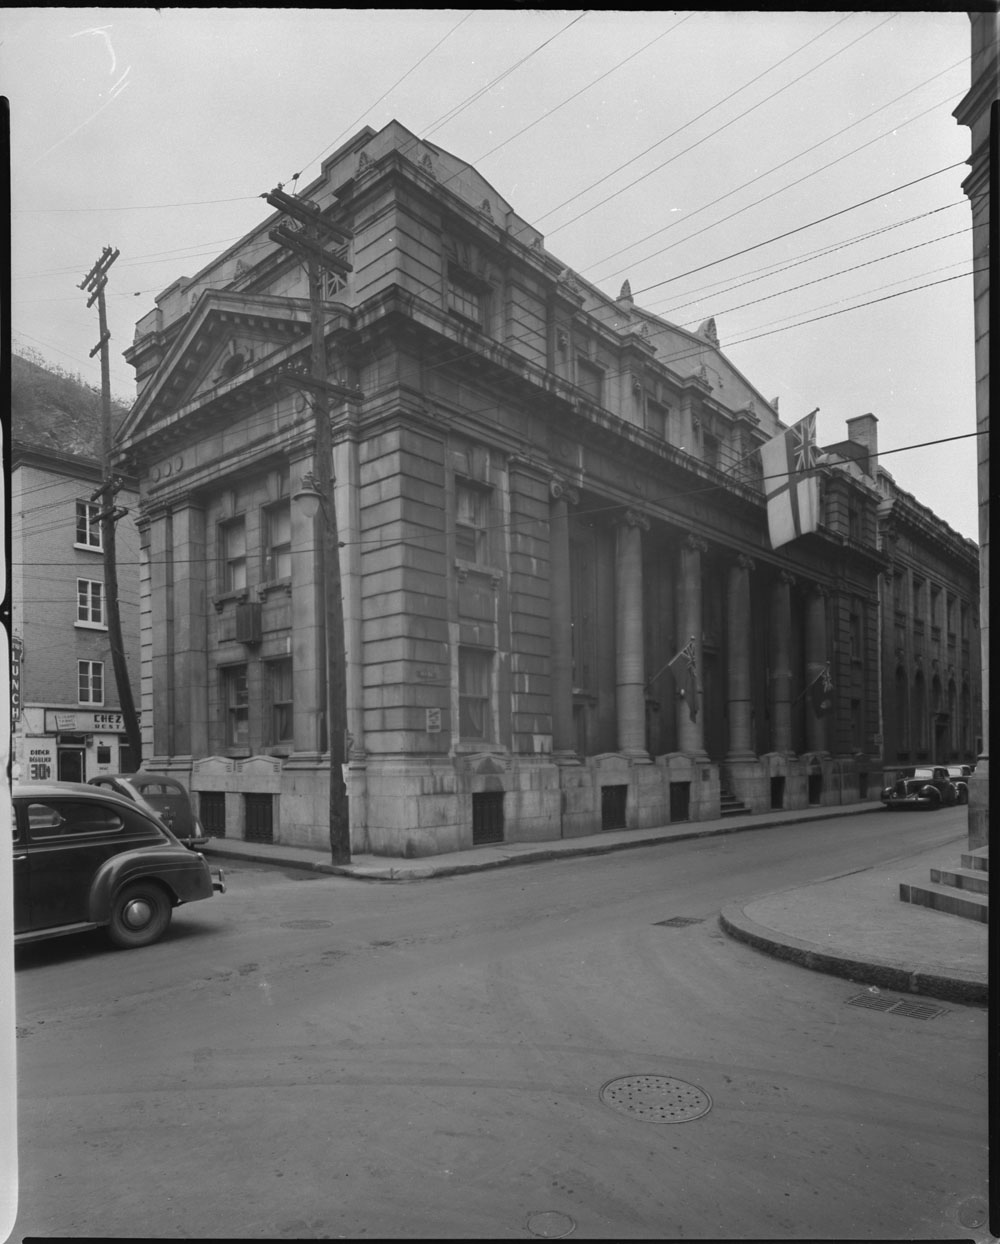 Knights of Columbus Hostel on St. Peter Street, Québec City in 1943